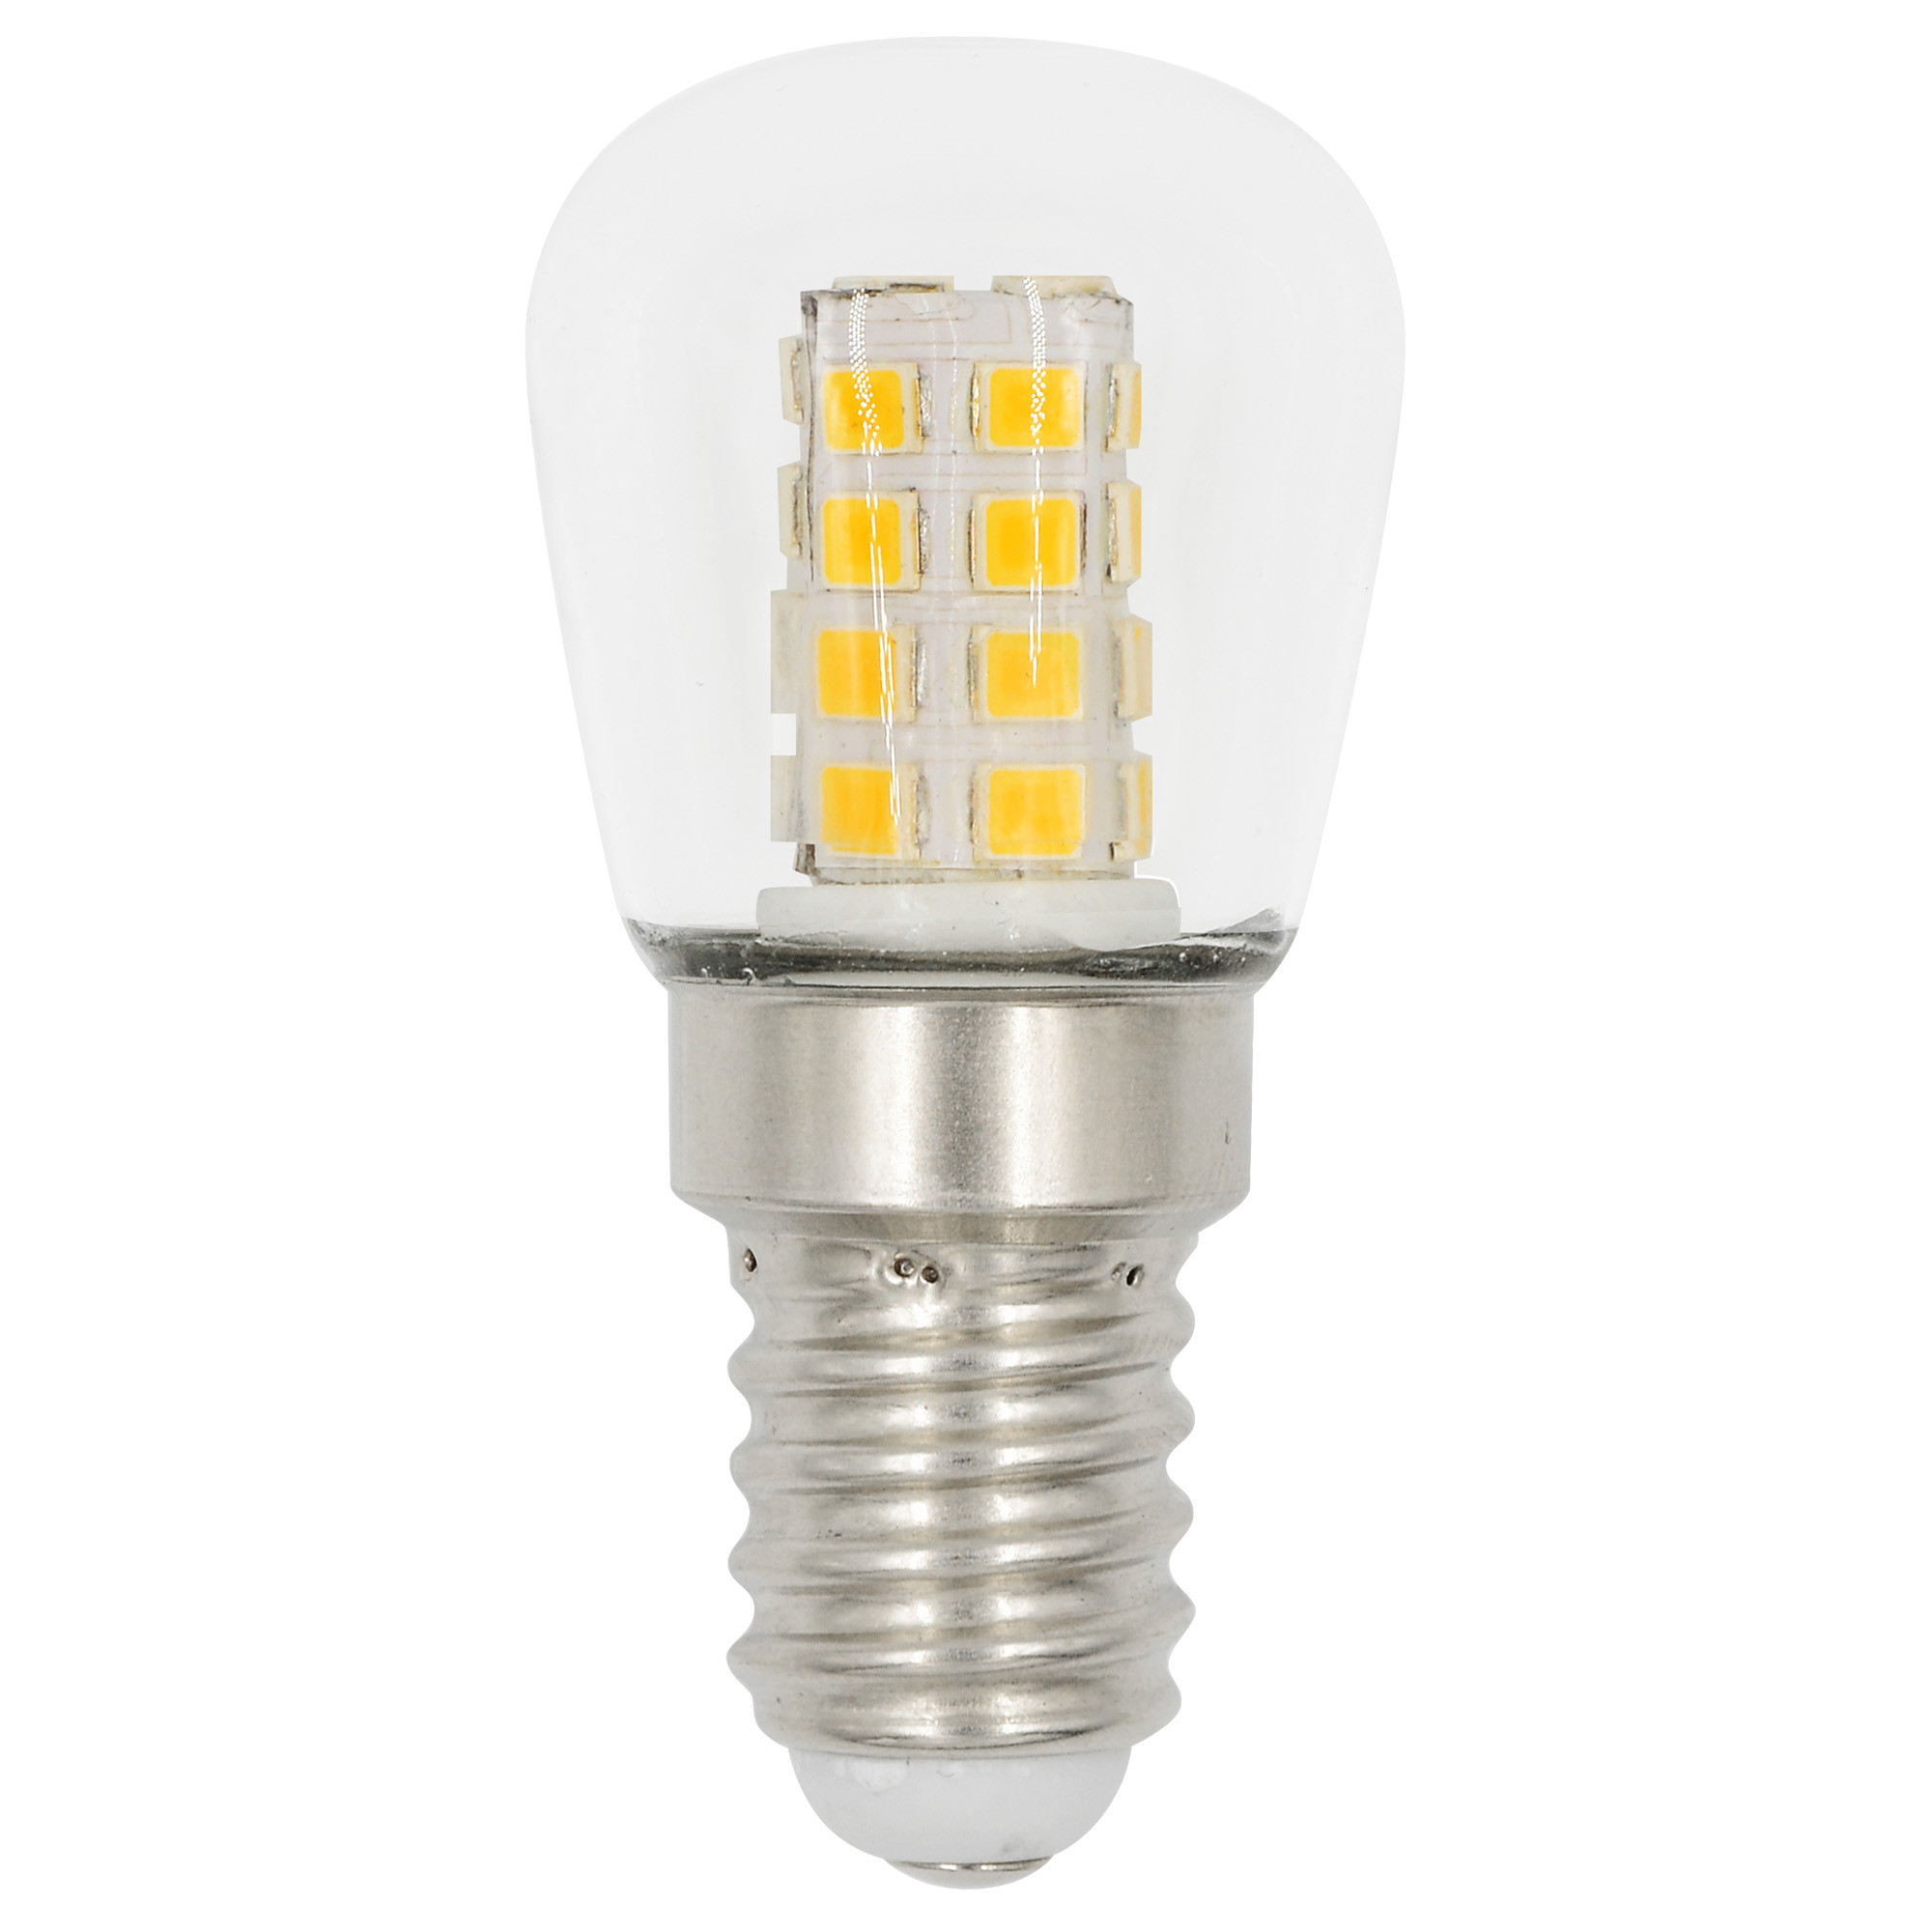 MENGS® E14 3W LED Light 26x 2835 SMD LED Bulb Lamp In Cool White Energy-Saving Light